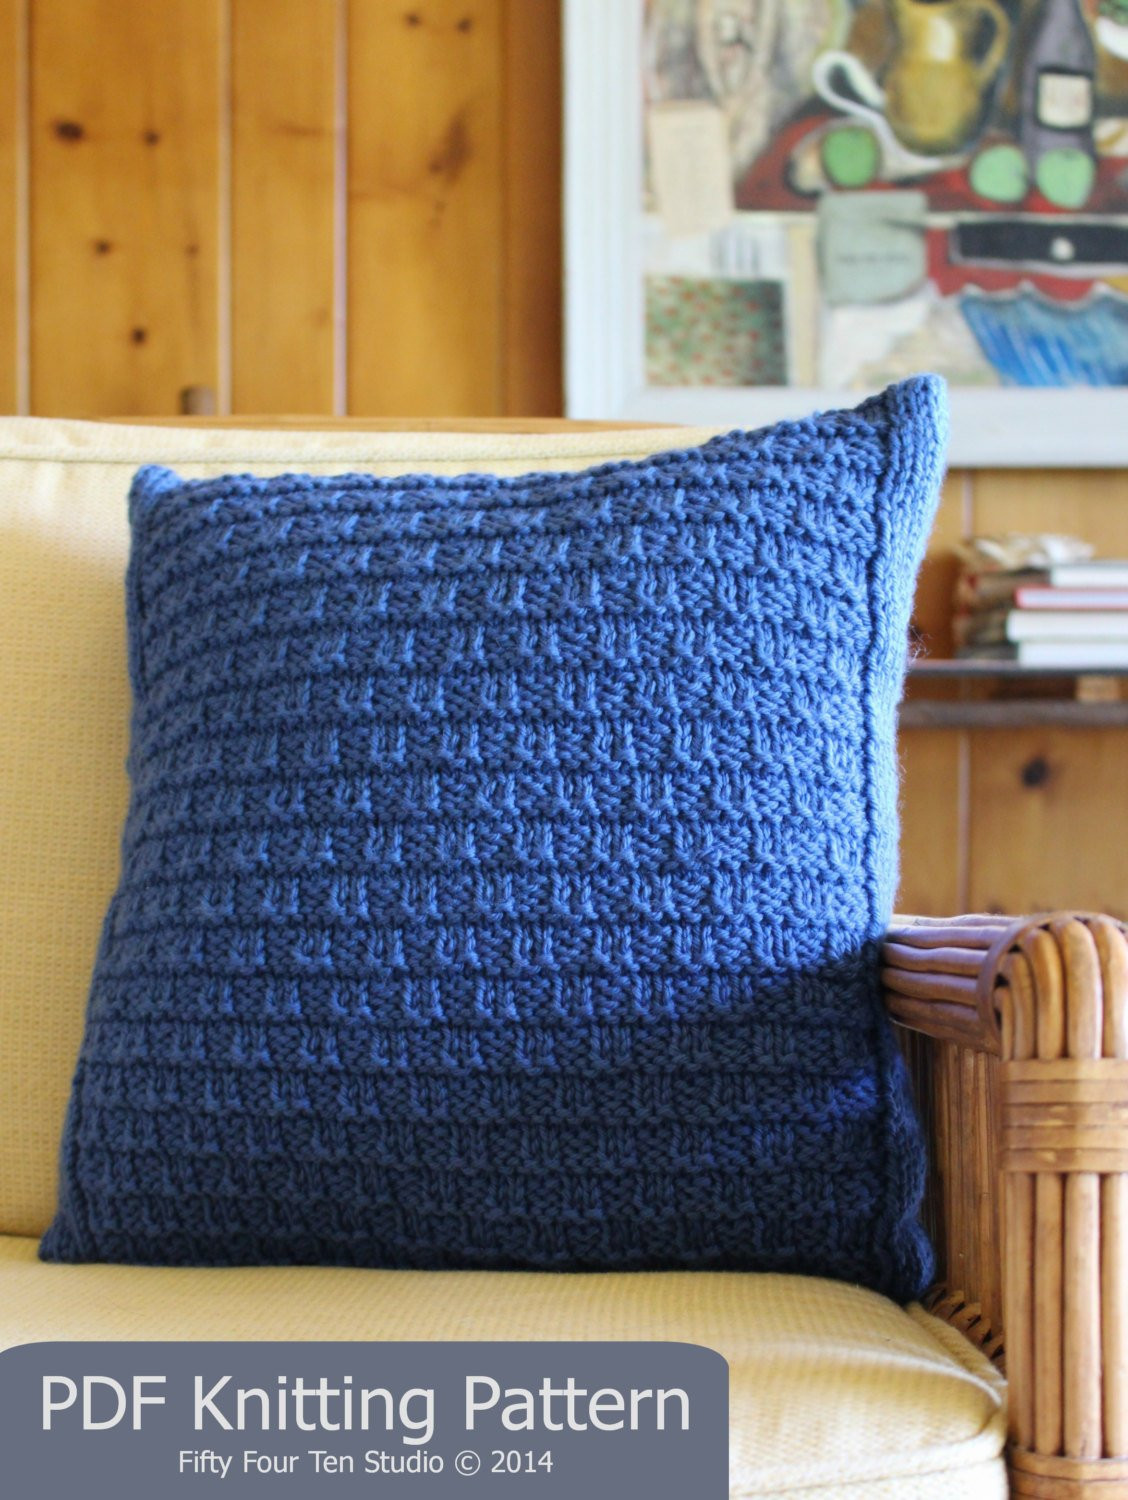 Knit Pillow Lovely New Pillow Knitting Pattern Cushion by Fiftyfourtenstudio Of Charming 46 Pics Knit Pillow